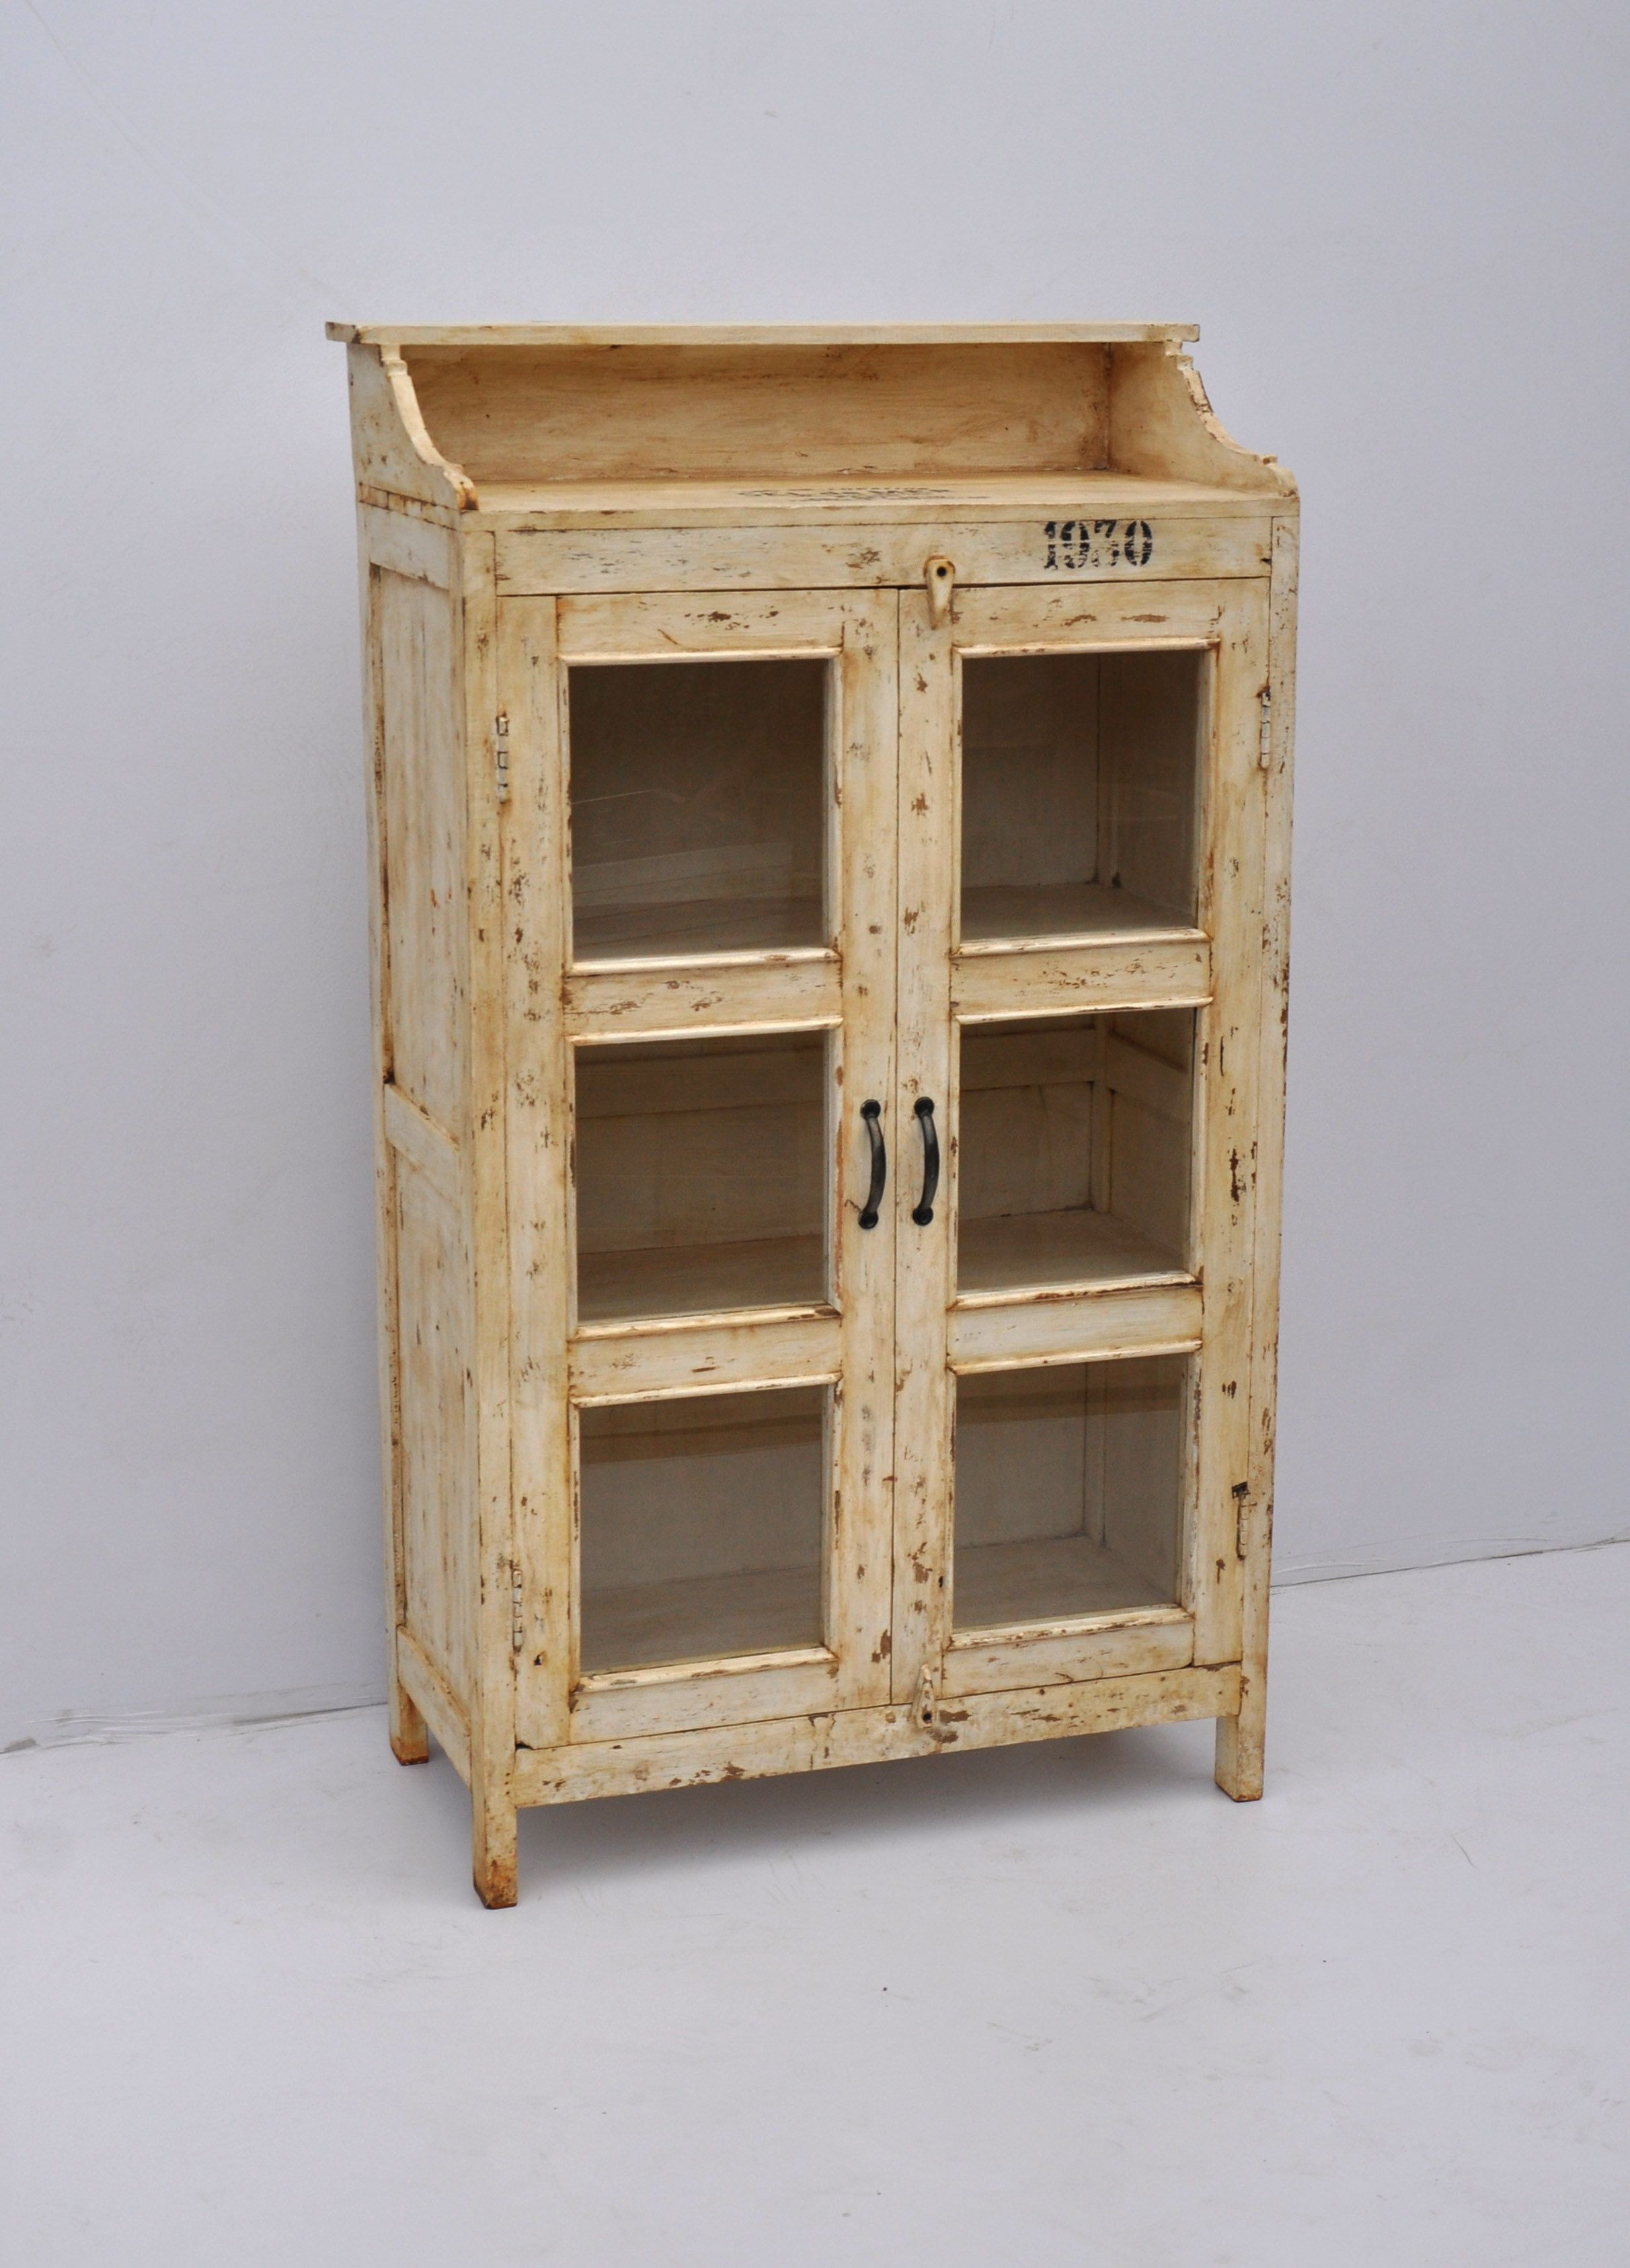 Solid Wood Storage Cabinet With Glass Windows Rustic Wood Furniture Beautiful Furniture Pieces Wood Storage Cabinets Solid wood storage cabinets